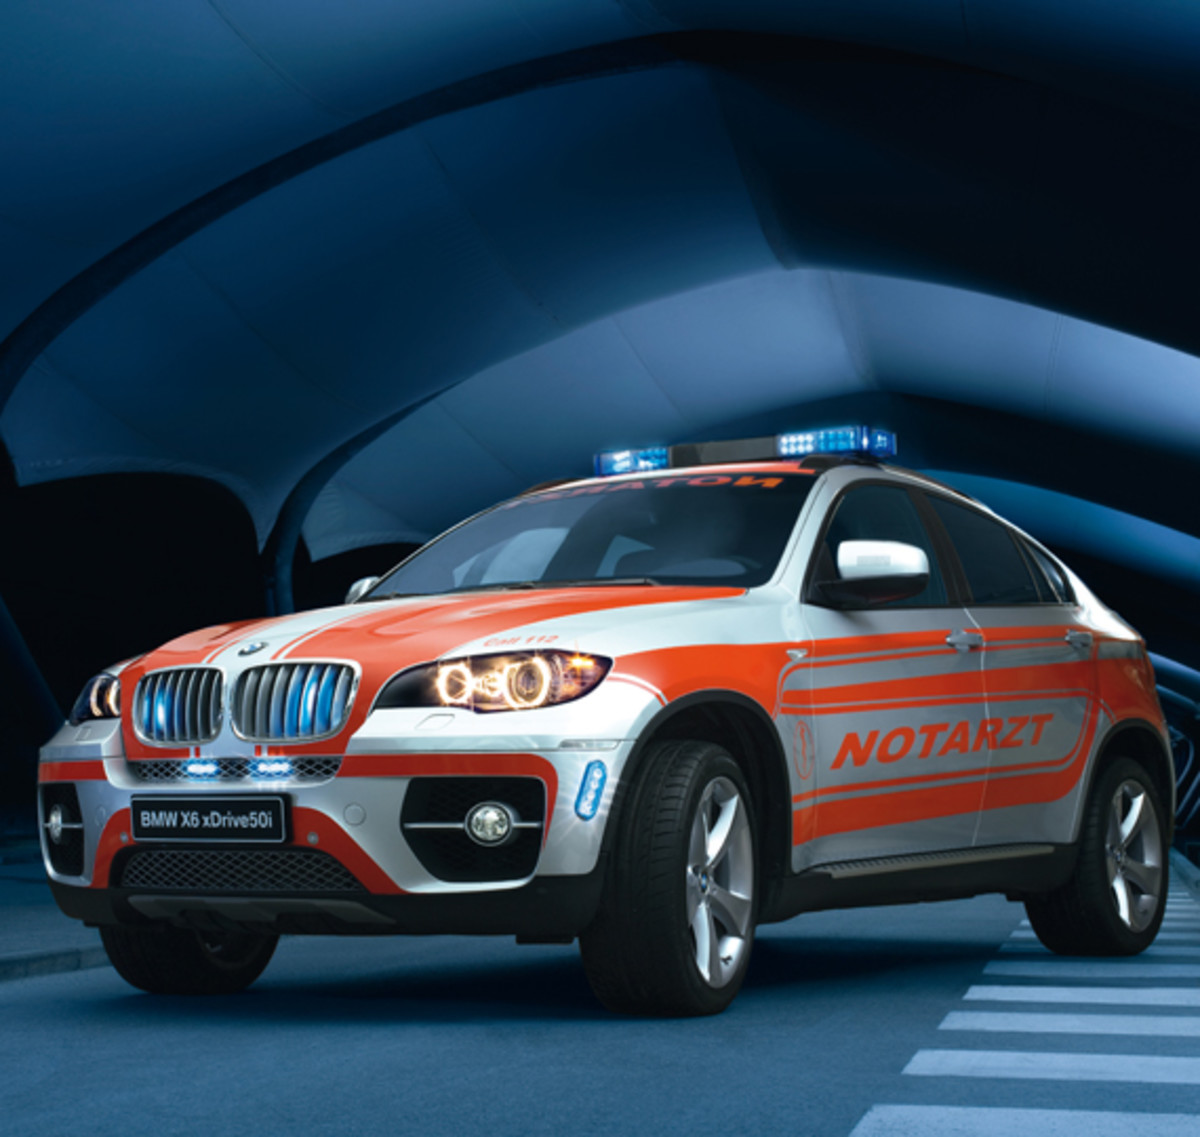 bmw-x6-emergency-vehicle-concept-01